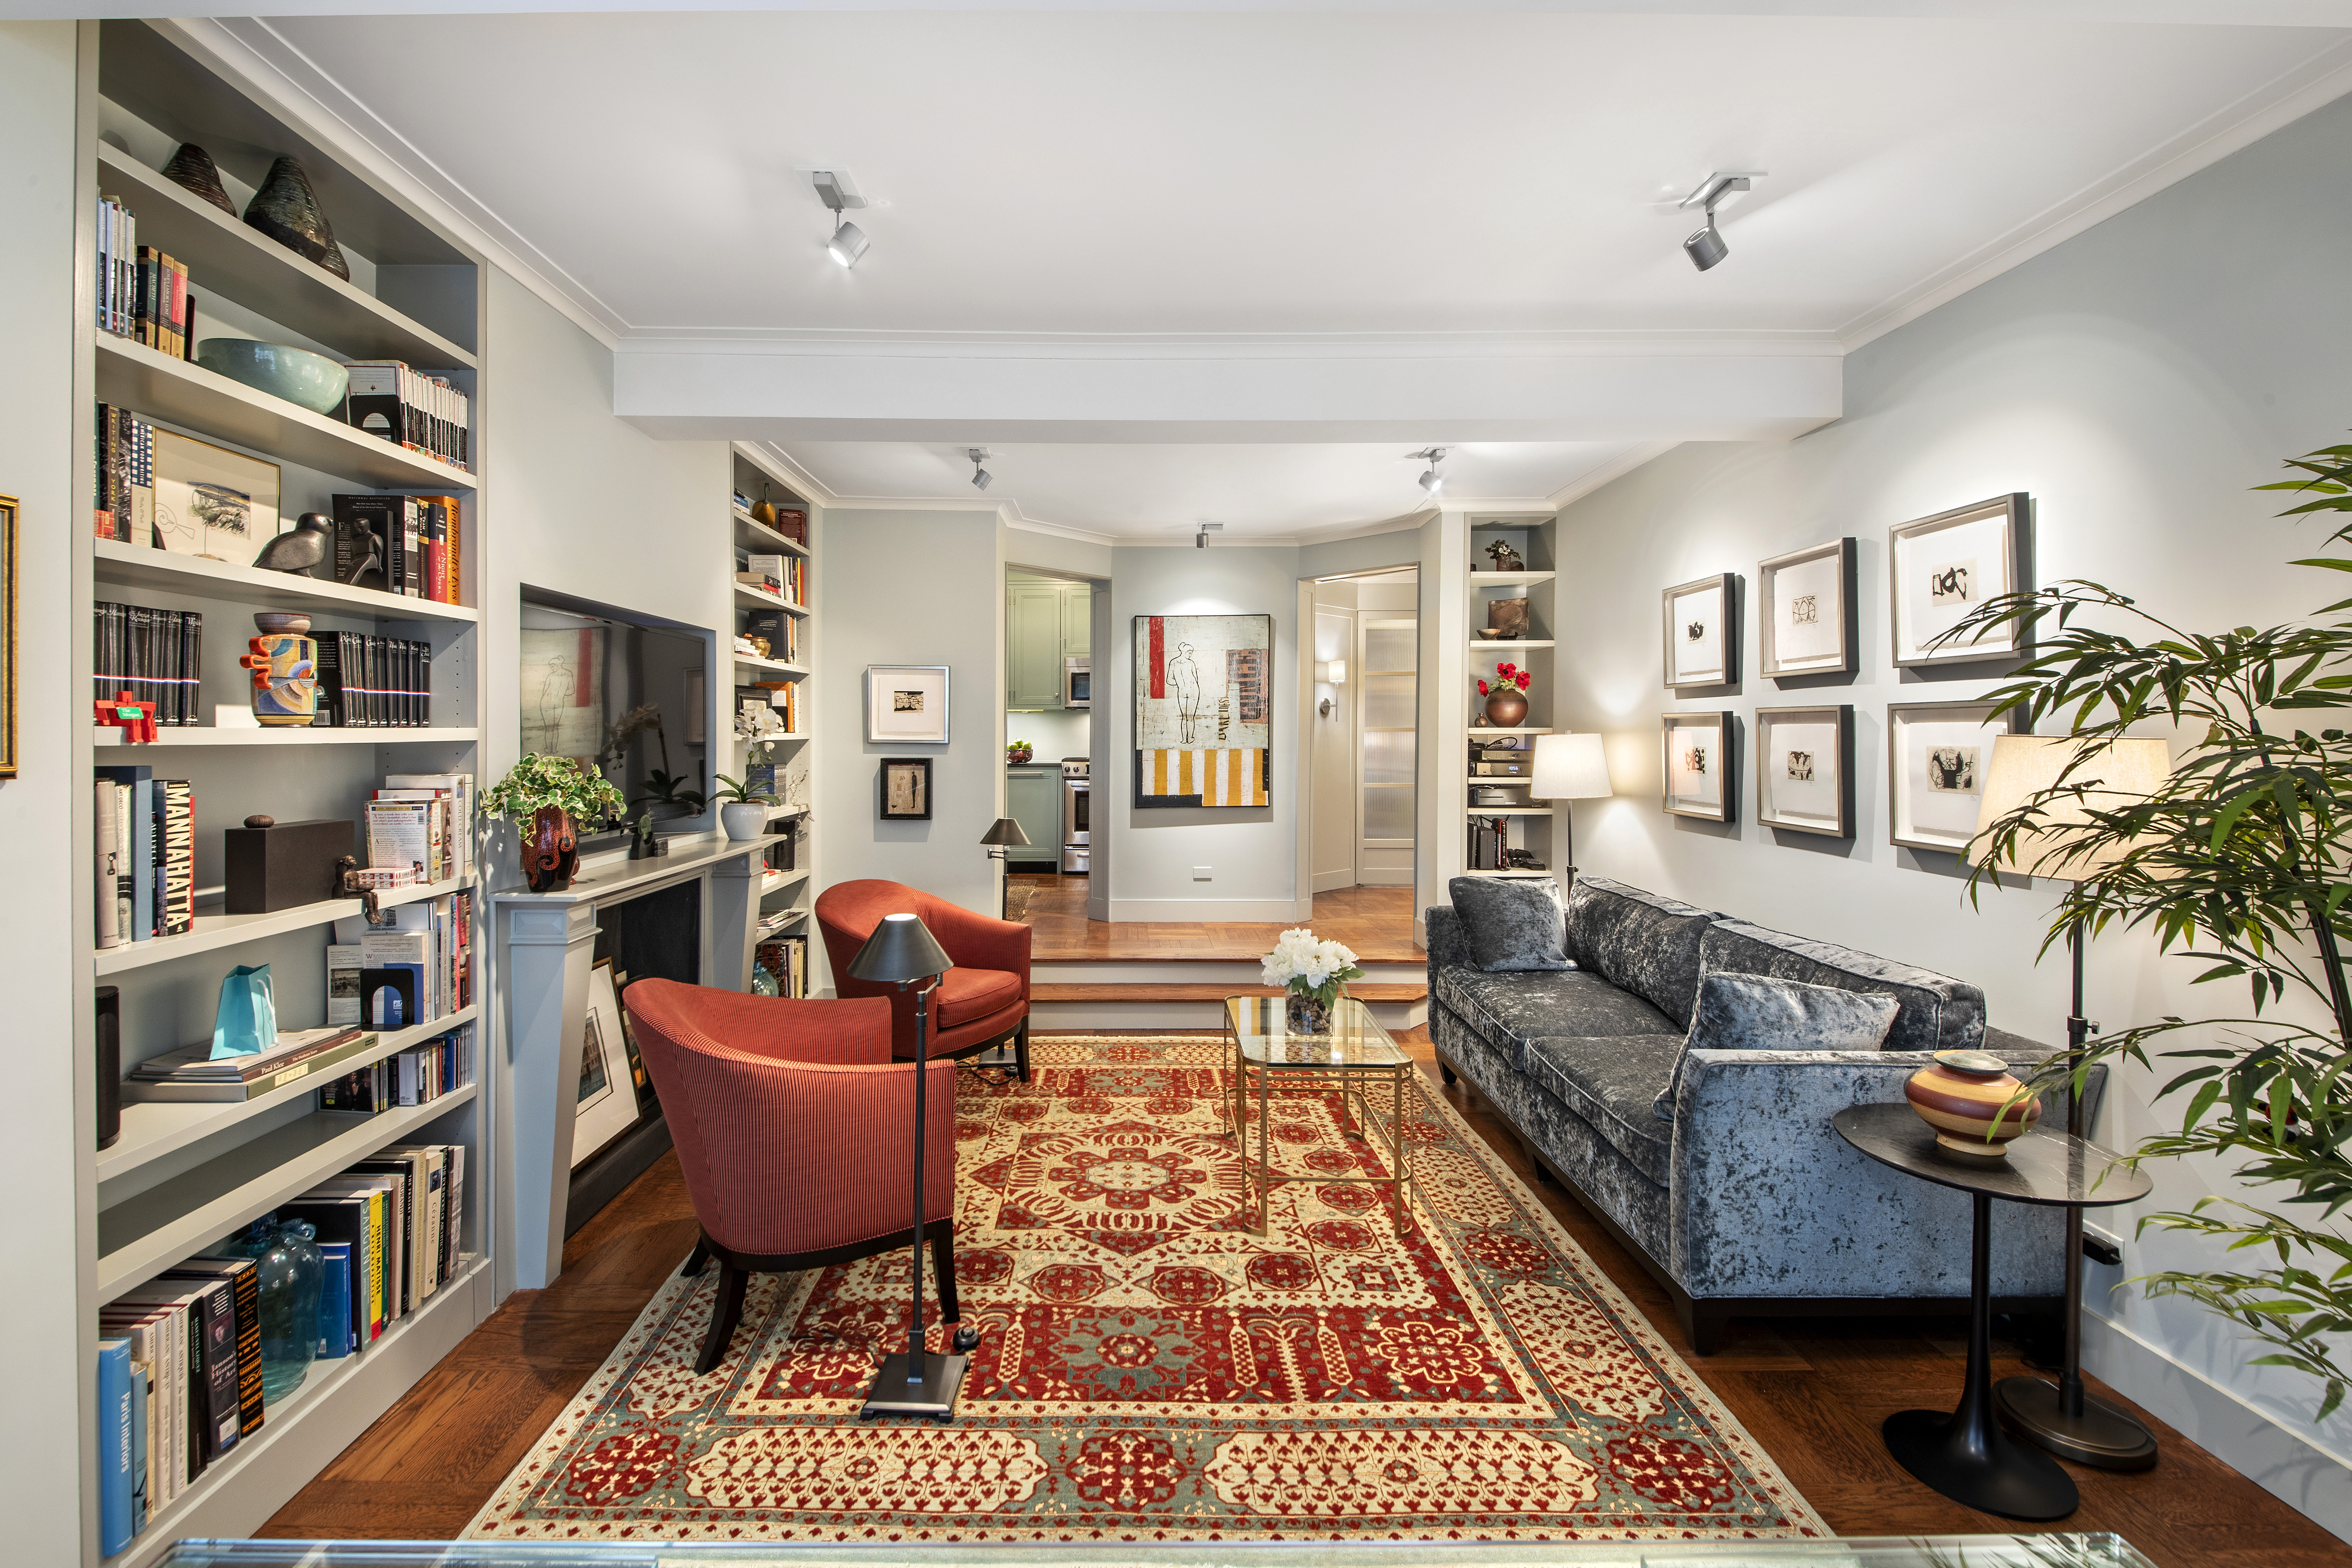 A sunken living room with a rug, built-in bookshelves, a planter, and a blue couch.